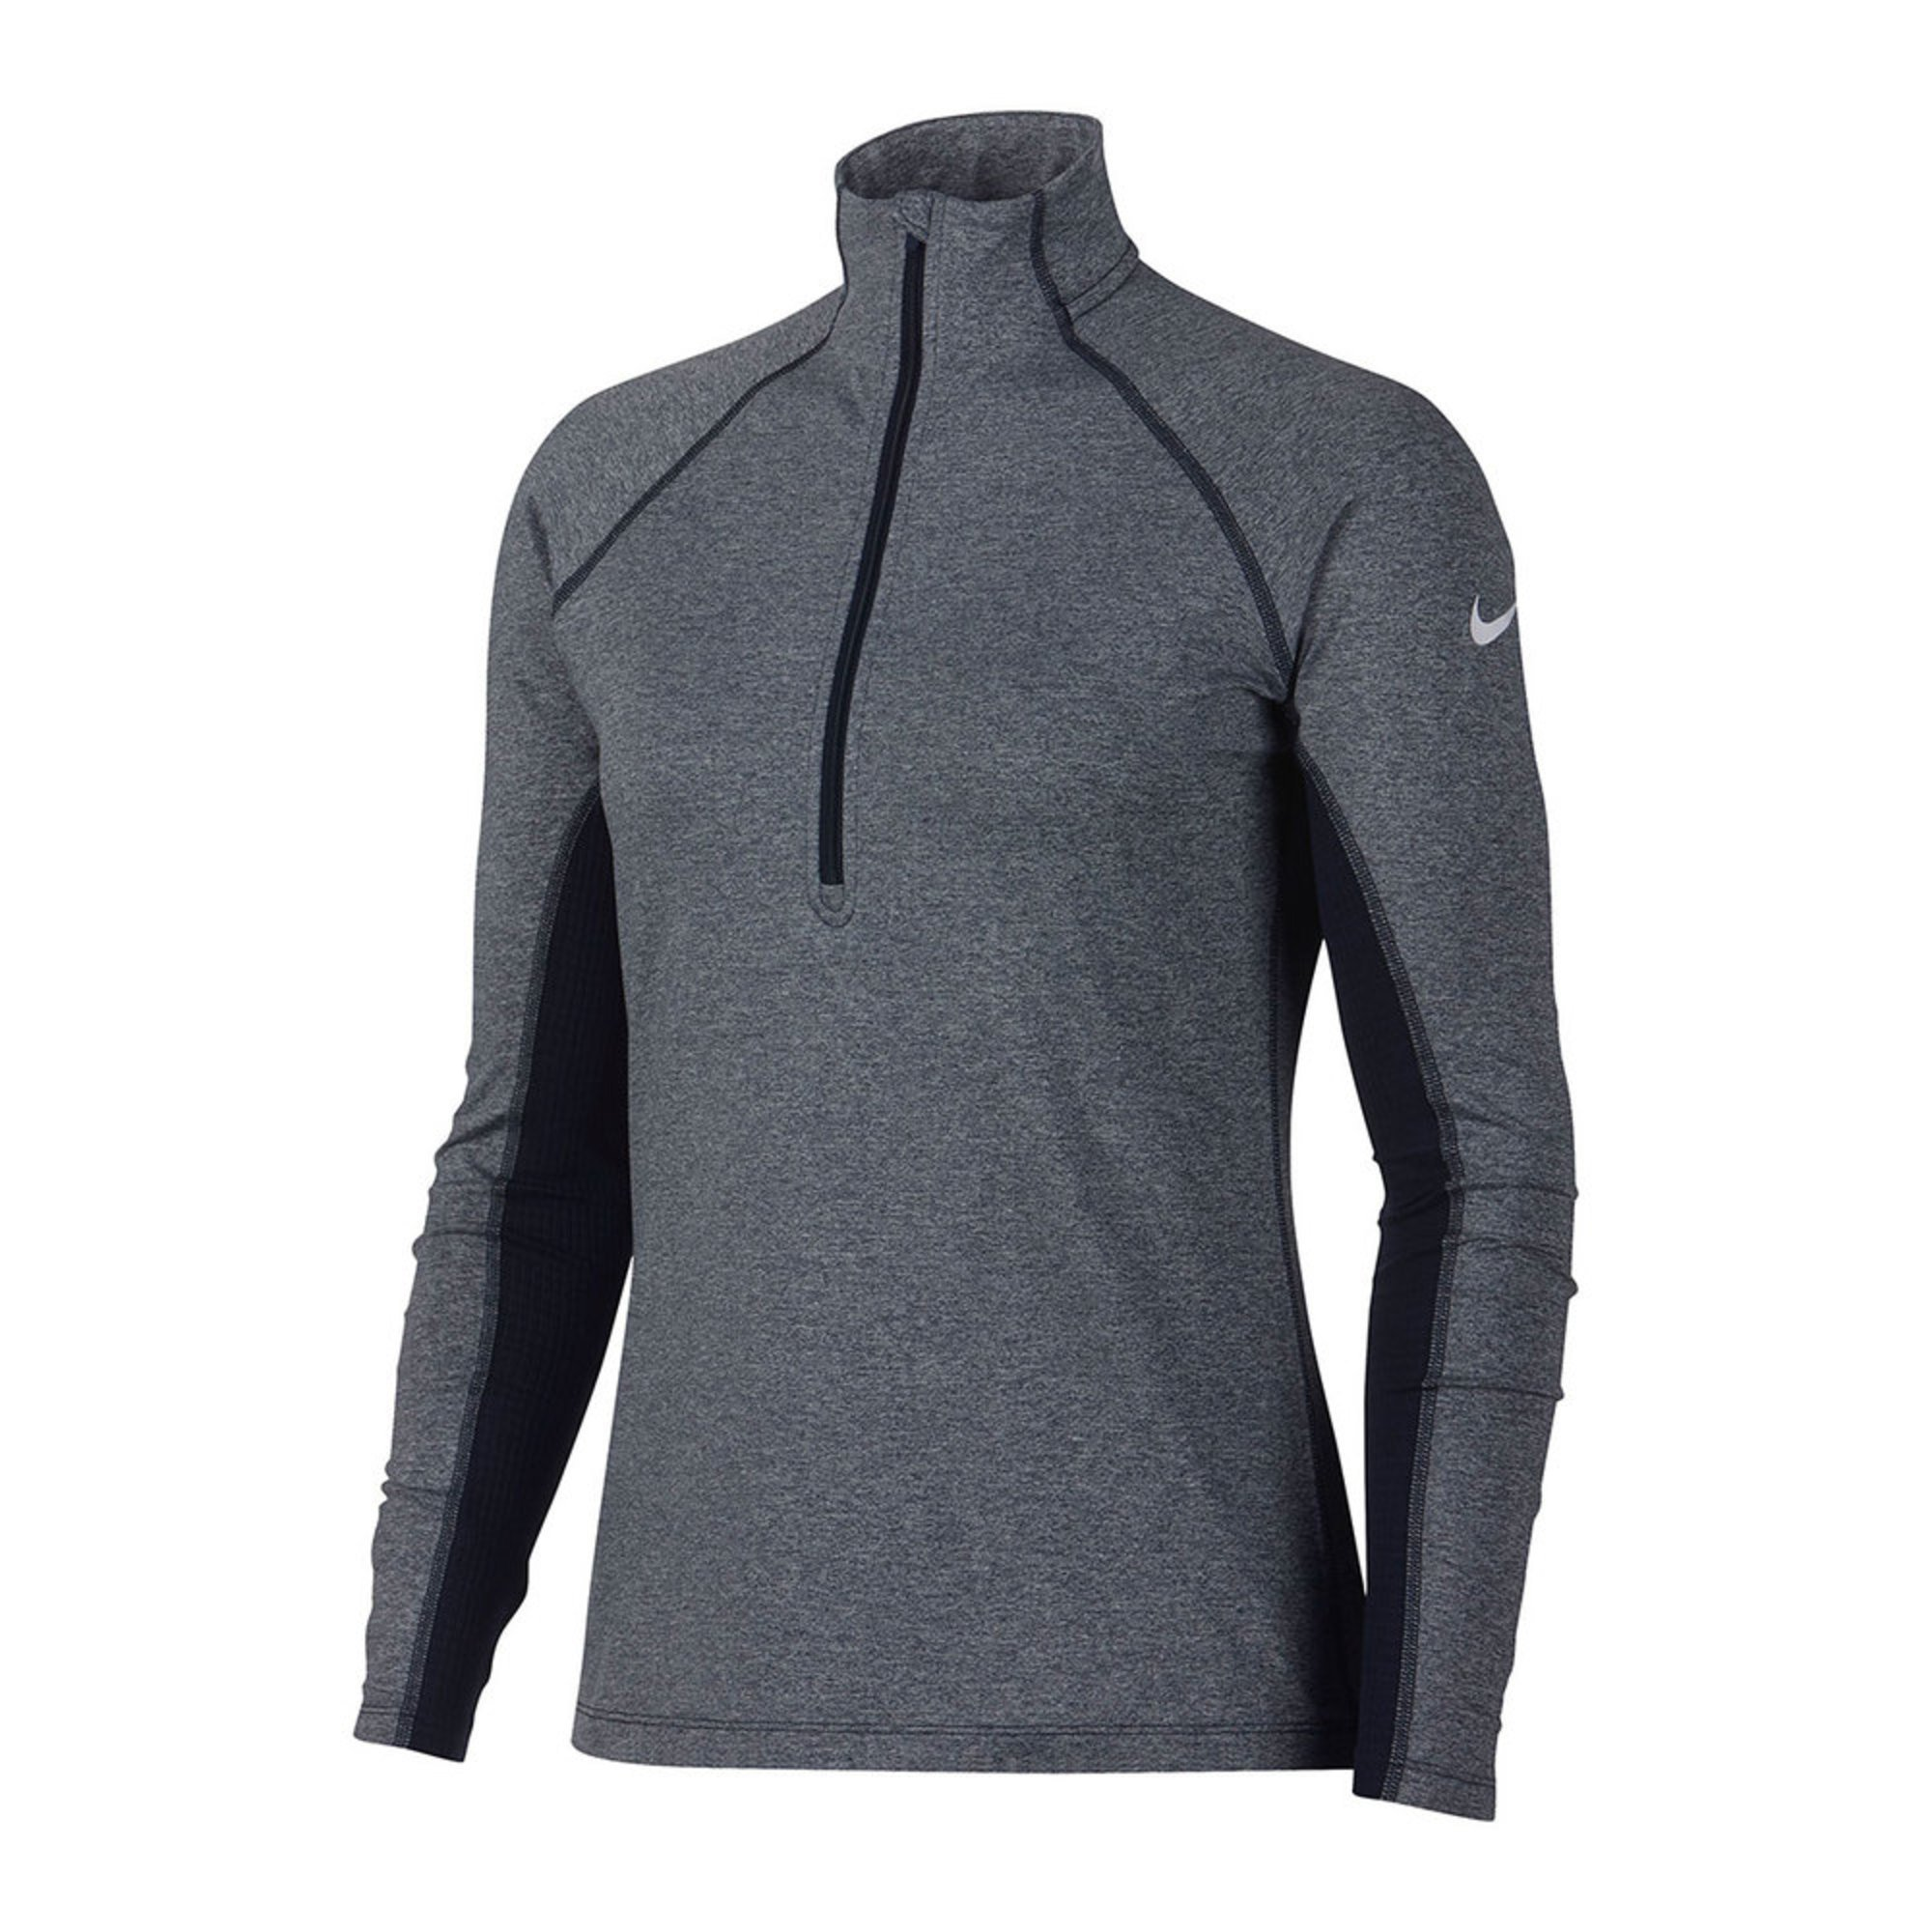 8a640b6c Nike Women's Nike Top | Active Tees & Tops | Apparel - Shop Your ...